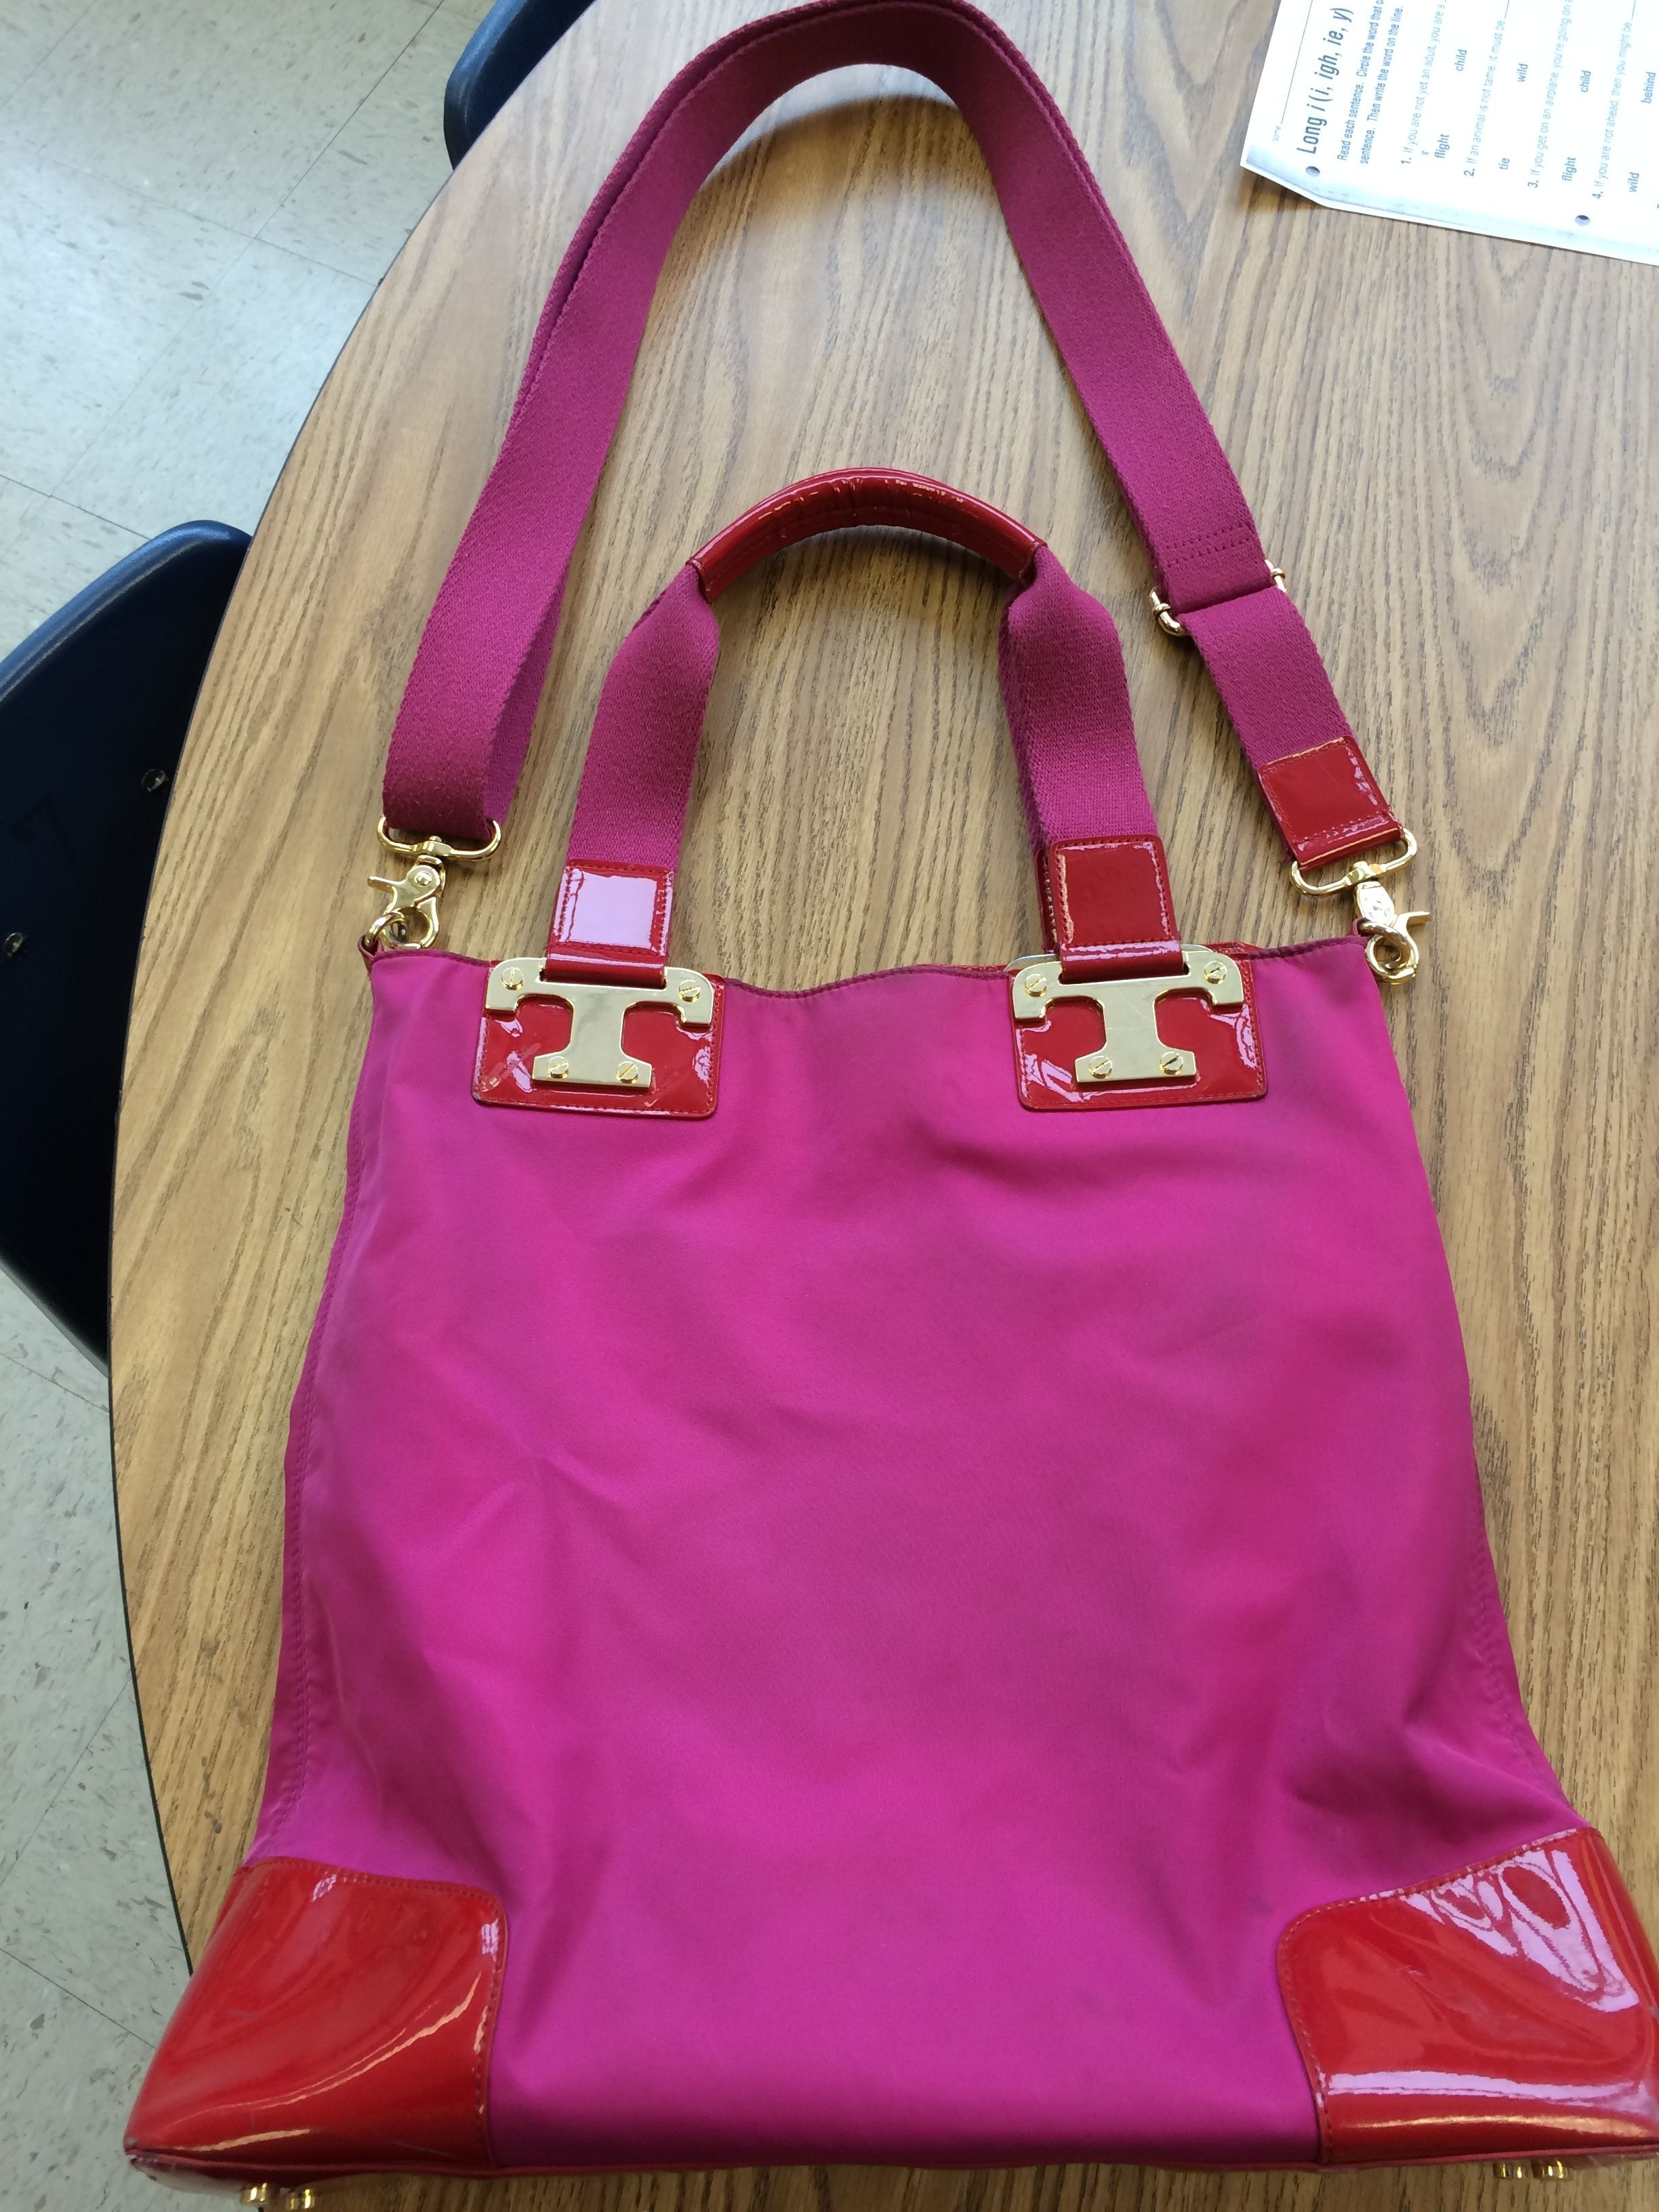 7904c3ca494 Tory Burch Isla Convertible Crossbody Pink & Red Tote Bag. Get one of the  hottest styles of the season! The Tory Burch Isla Convertible Crossbody  Pink & Red ...